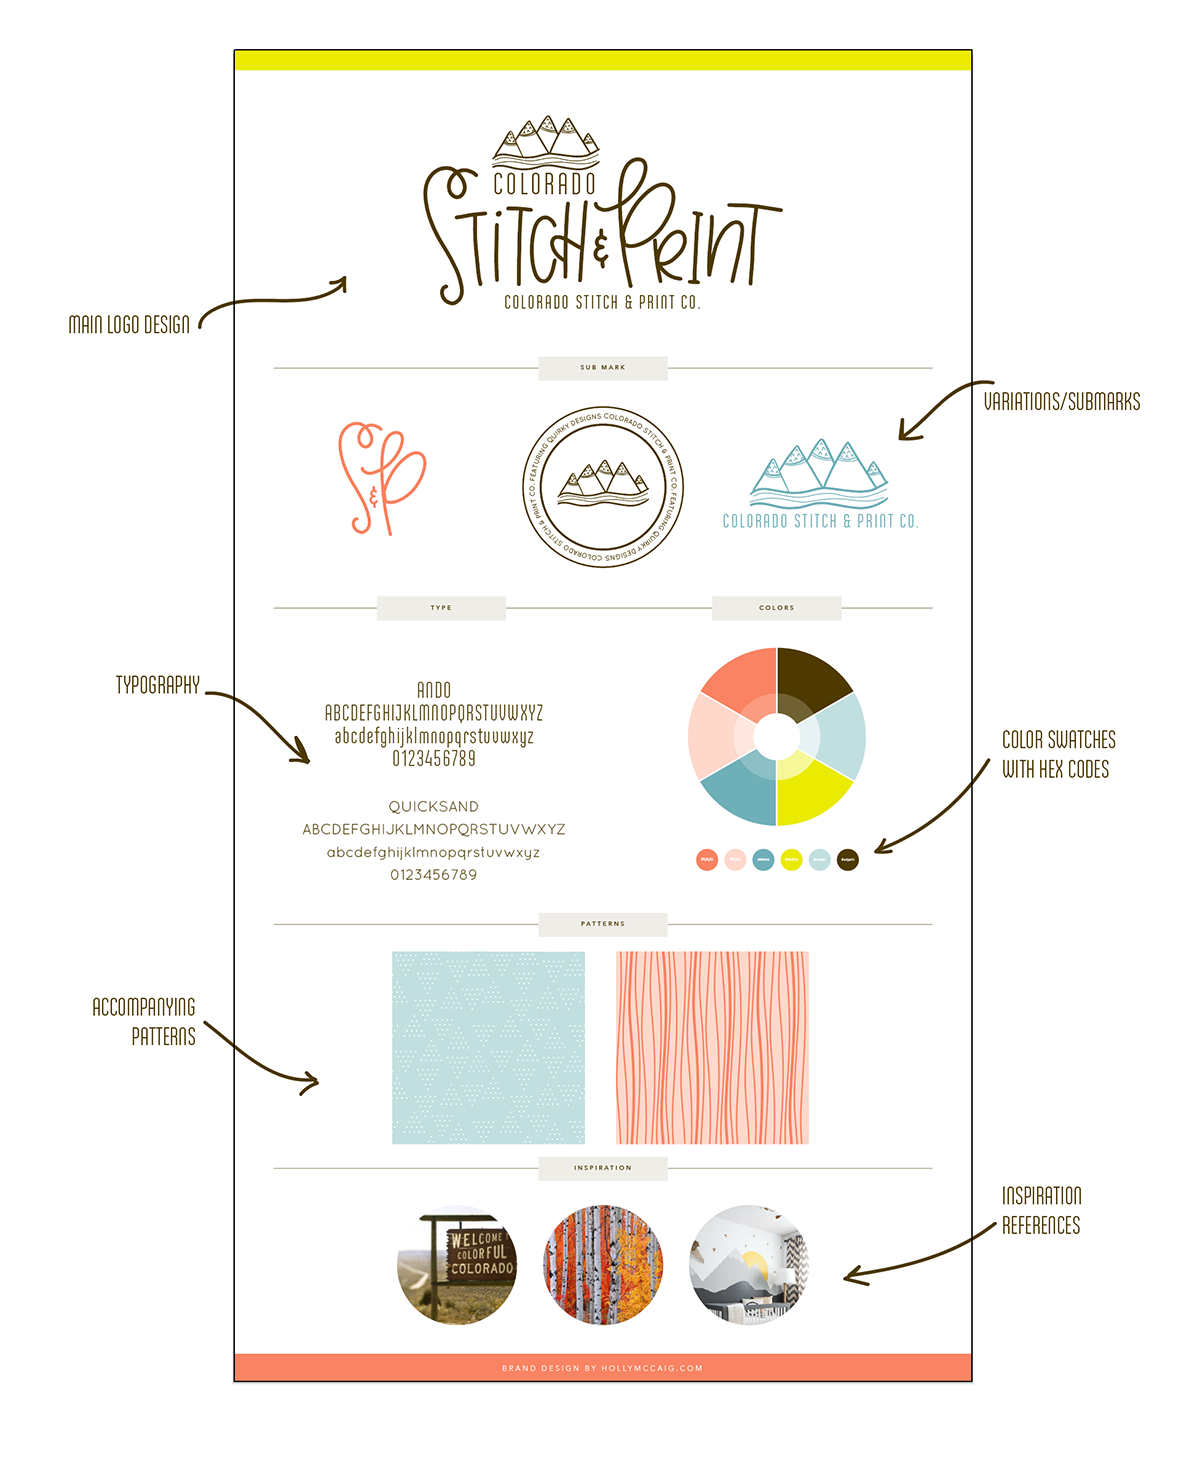 The Anatomy Of A Brand Style Guide Pinterest Brand Style Guide - Brand style guide template